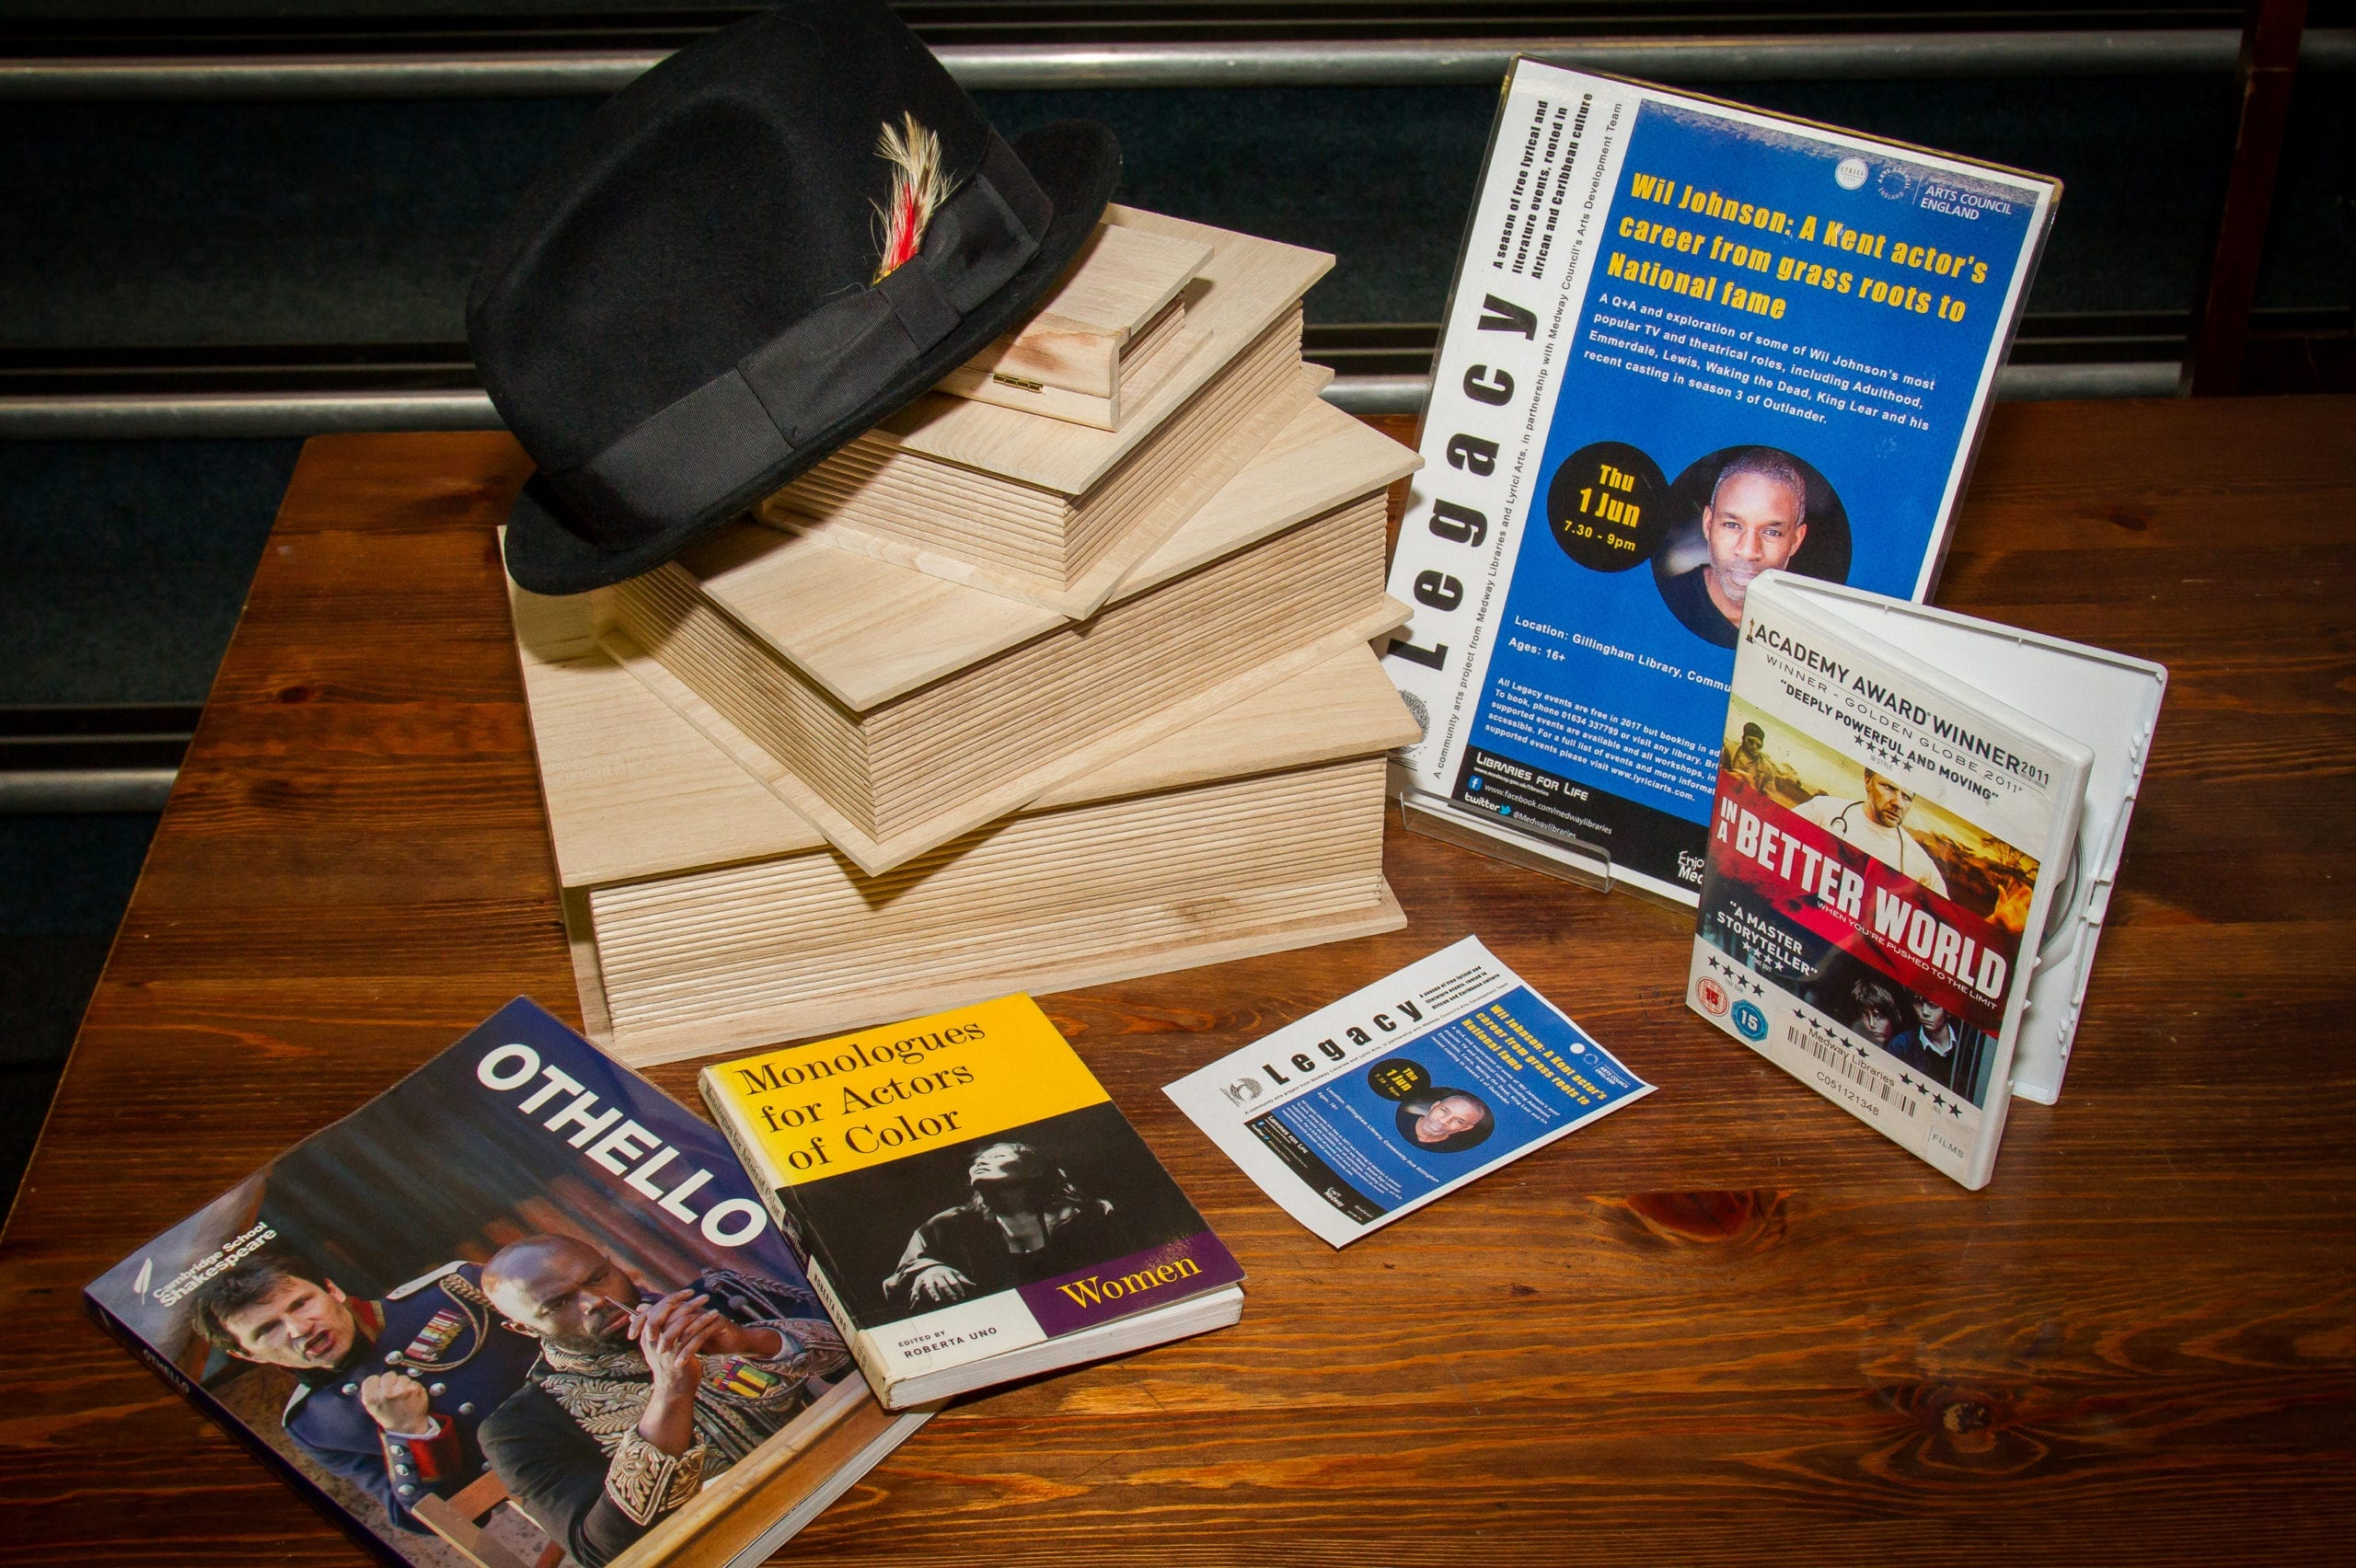 A display with a poster for a Legacy event, a black hat, wooden books and a DVD